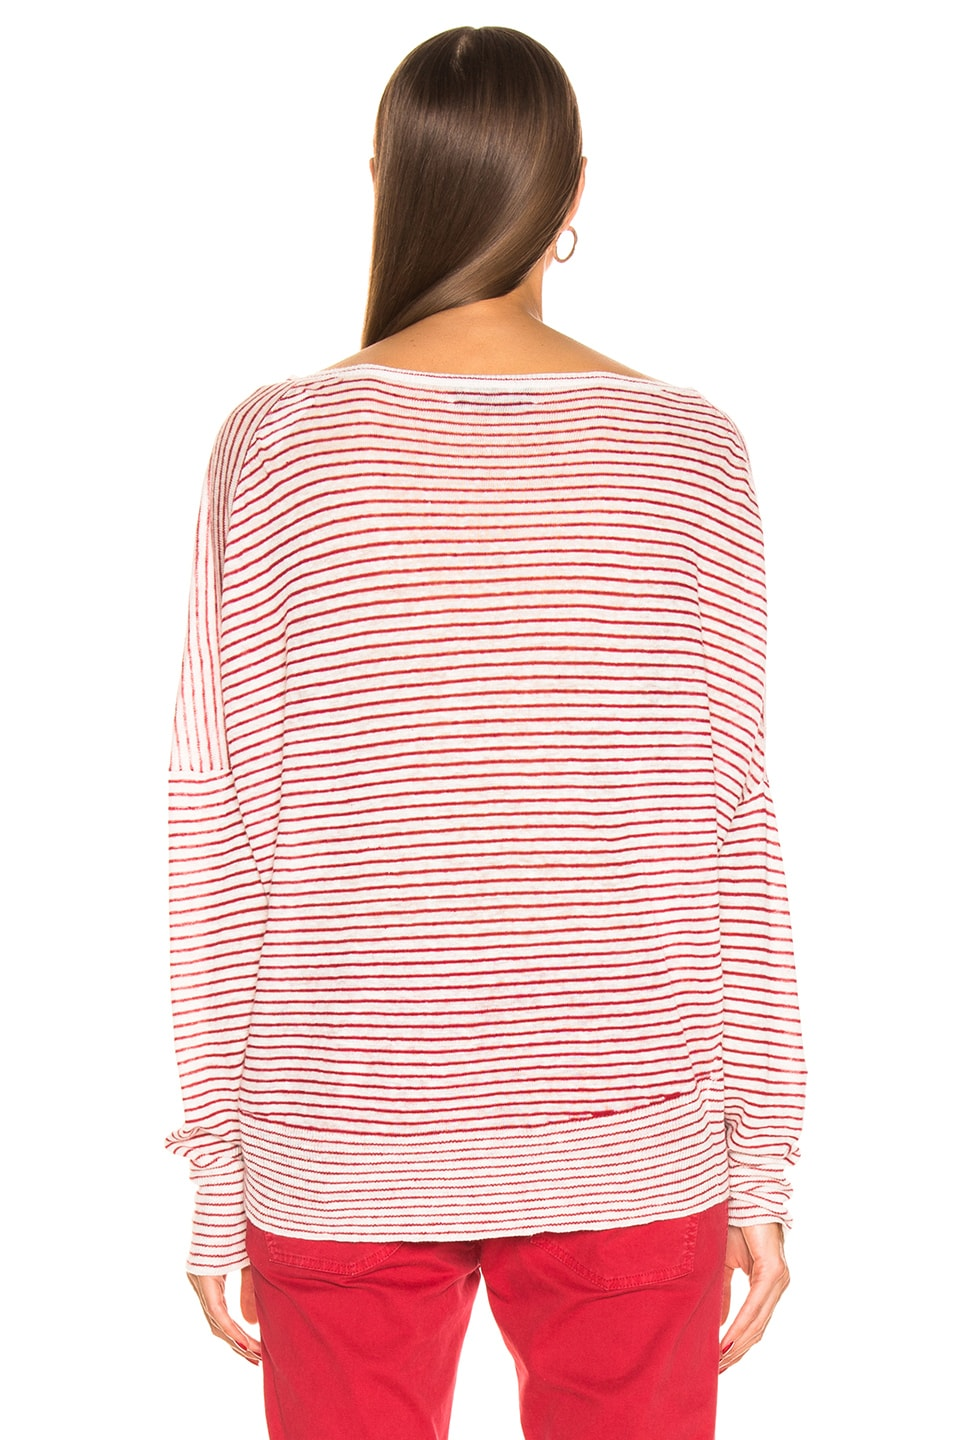 Image 4 of NILI LOTAN Maggie Sweater in Ivory & Red Stripe